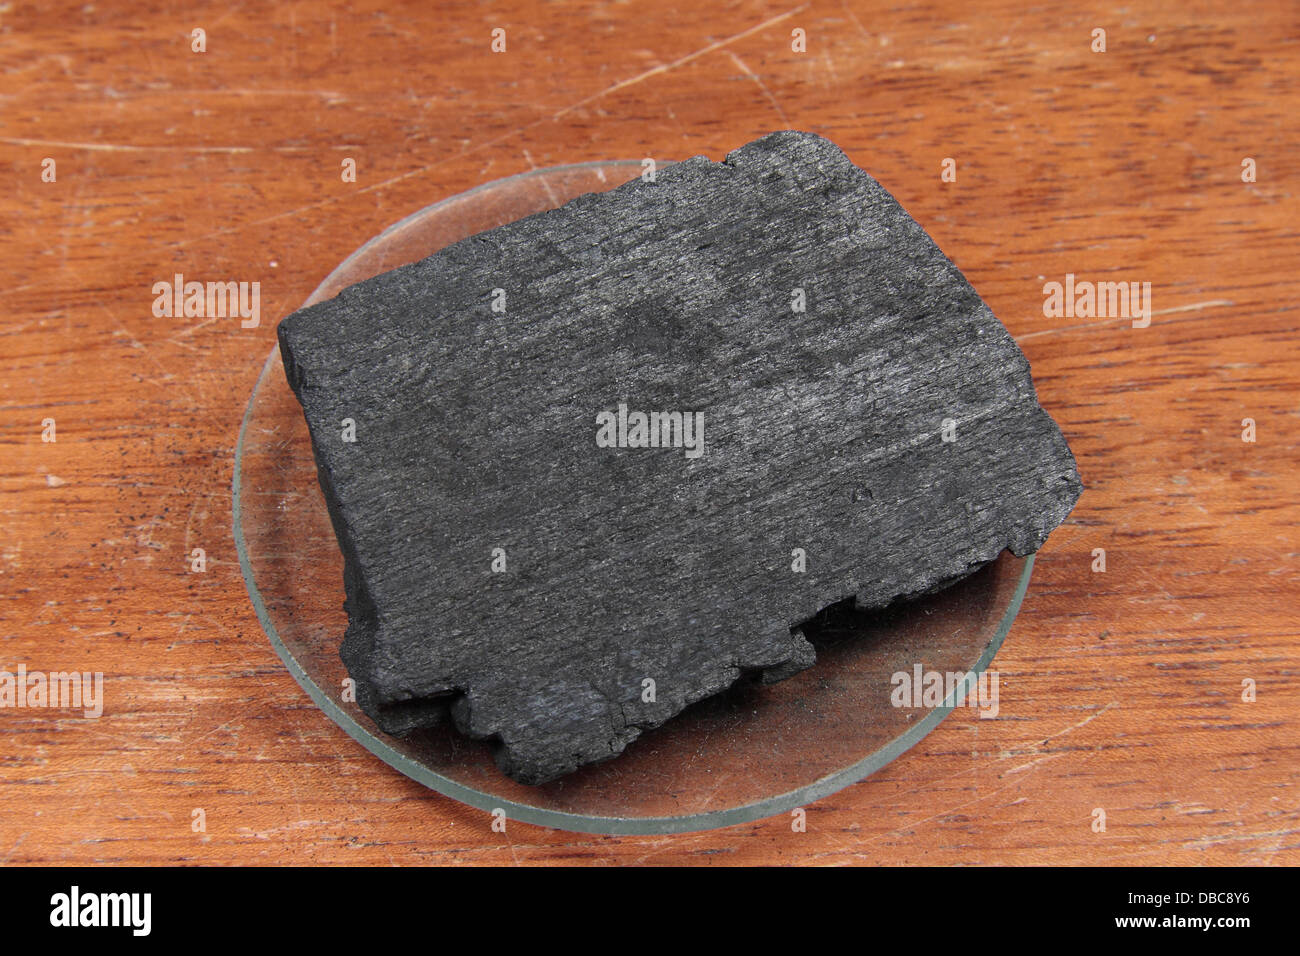 A charcoal block, as used in a UK high school. - Stock Image